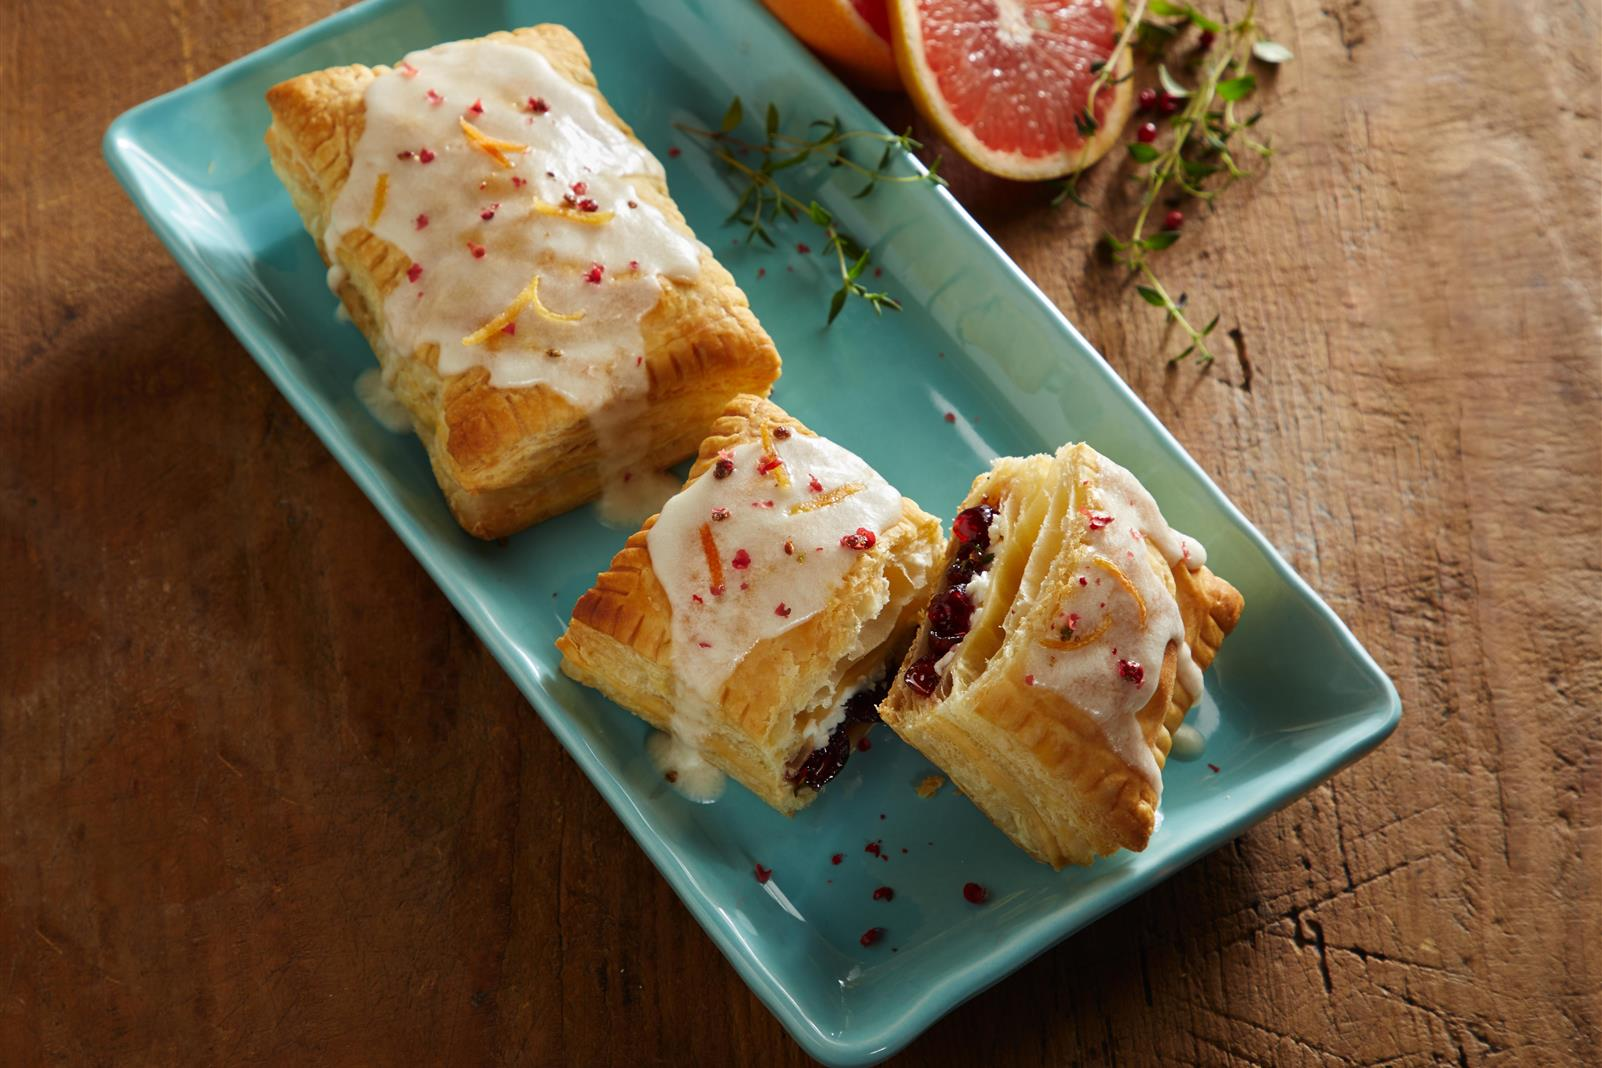 Cranberry Grapefruit Cheese Tarts with Zesty Thyme & Pink Peppercorn Sprinkles